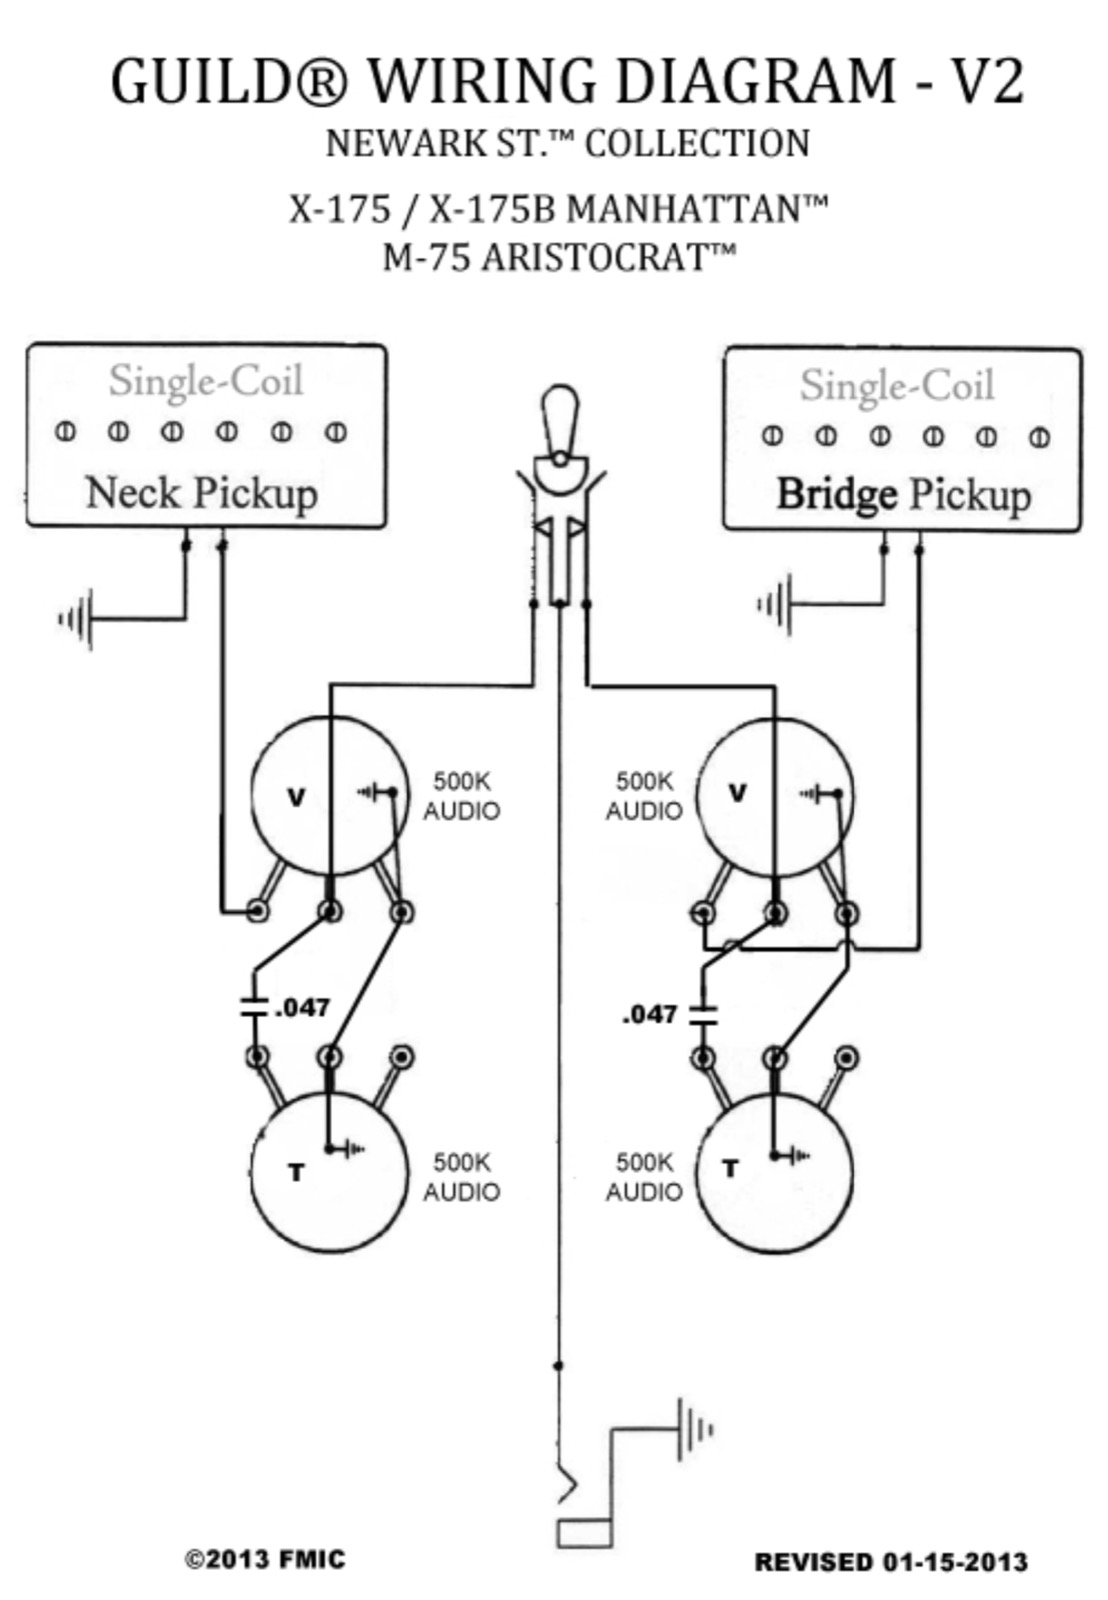 Help With Ns M 75 Volume And Tone Pots Archive Letstalkguild Single Coil Pickup Wiring Diagram